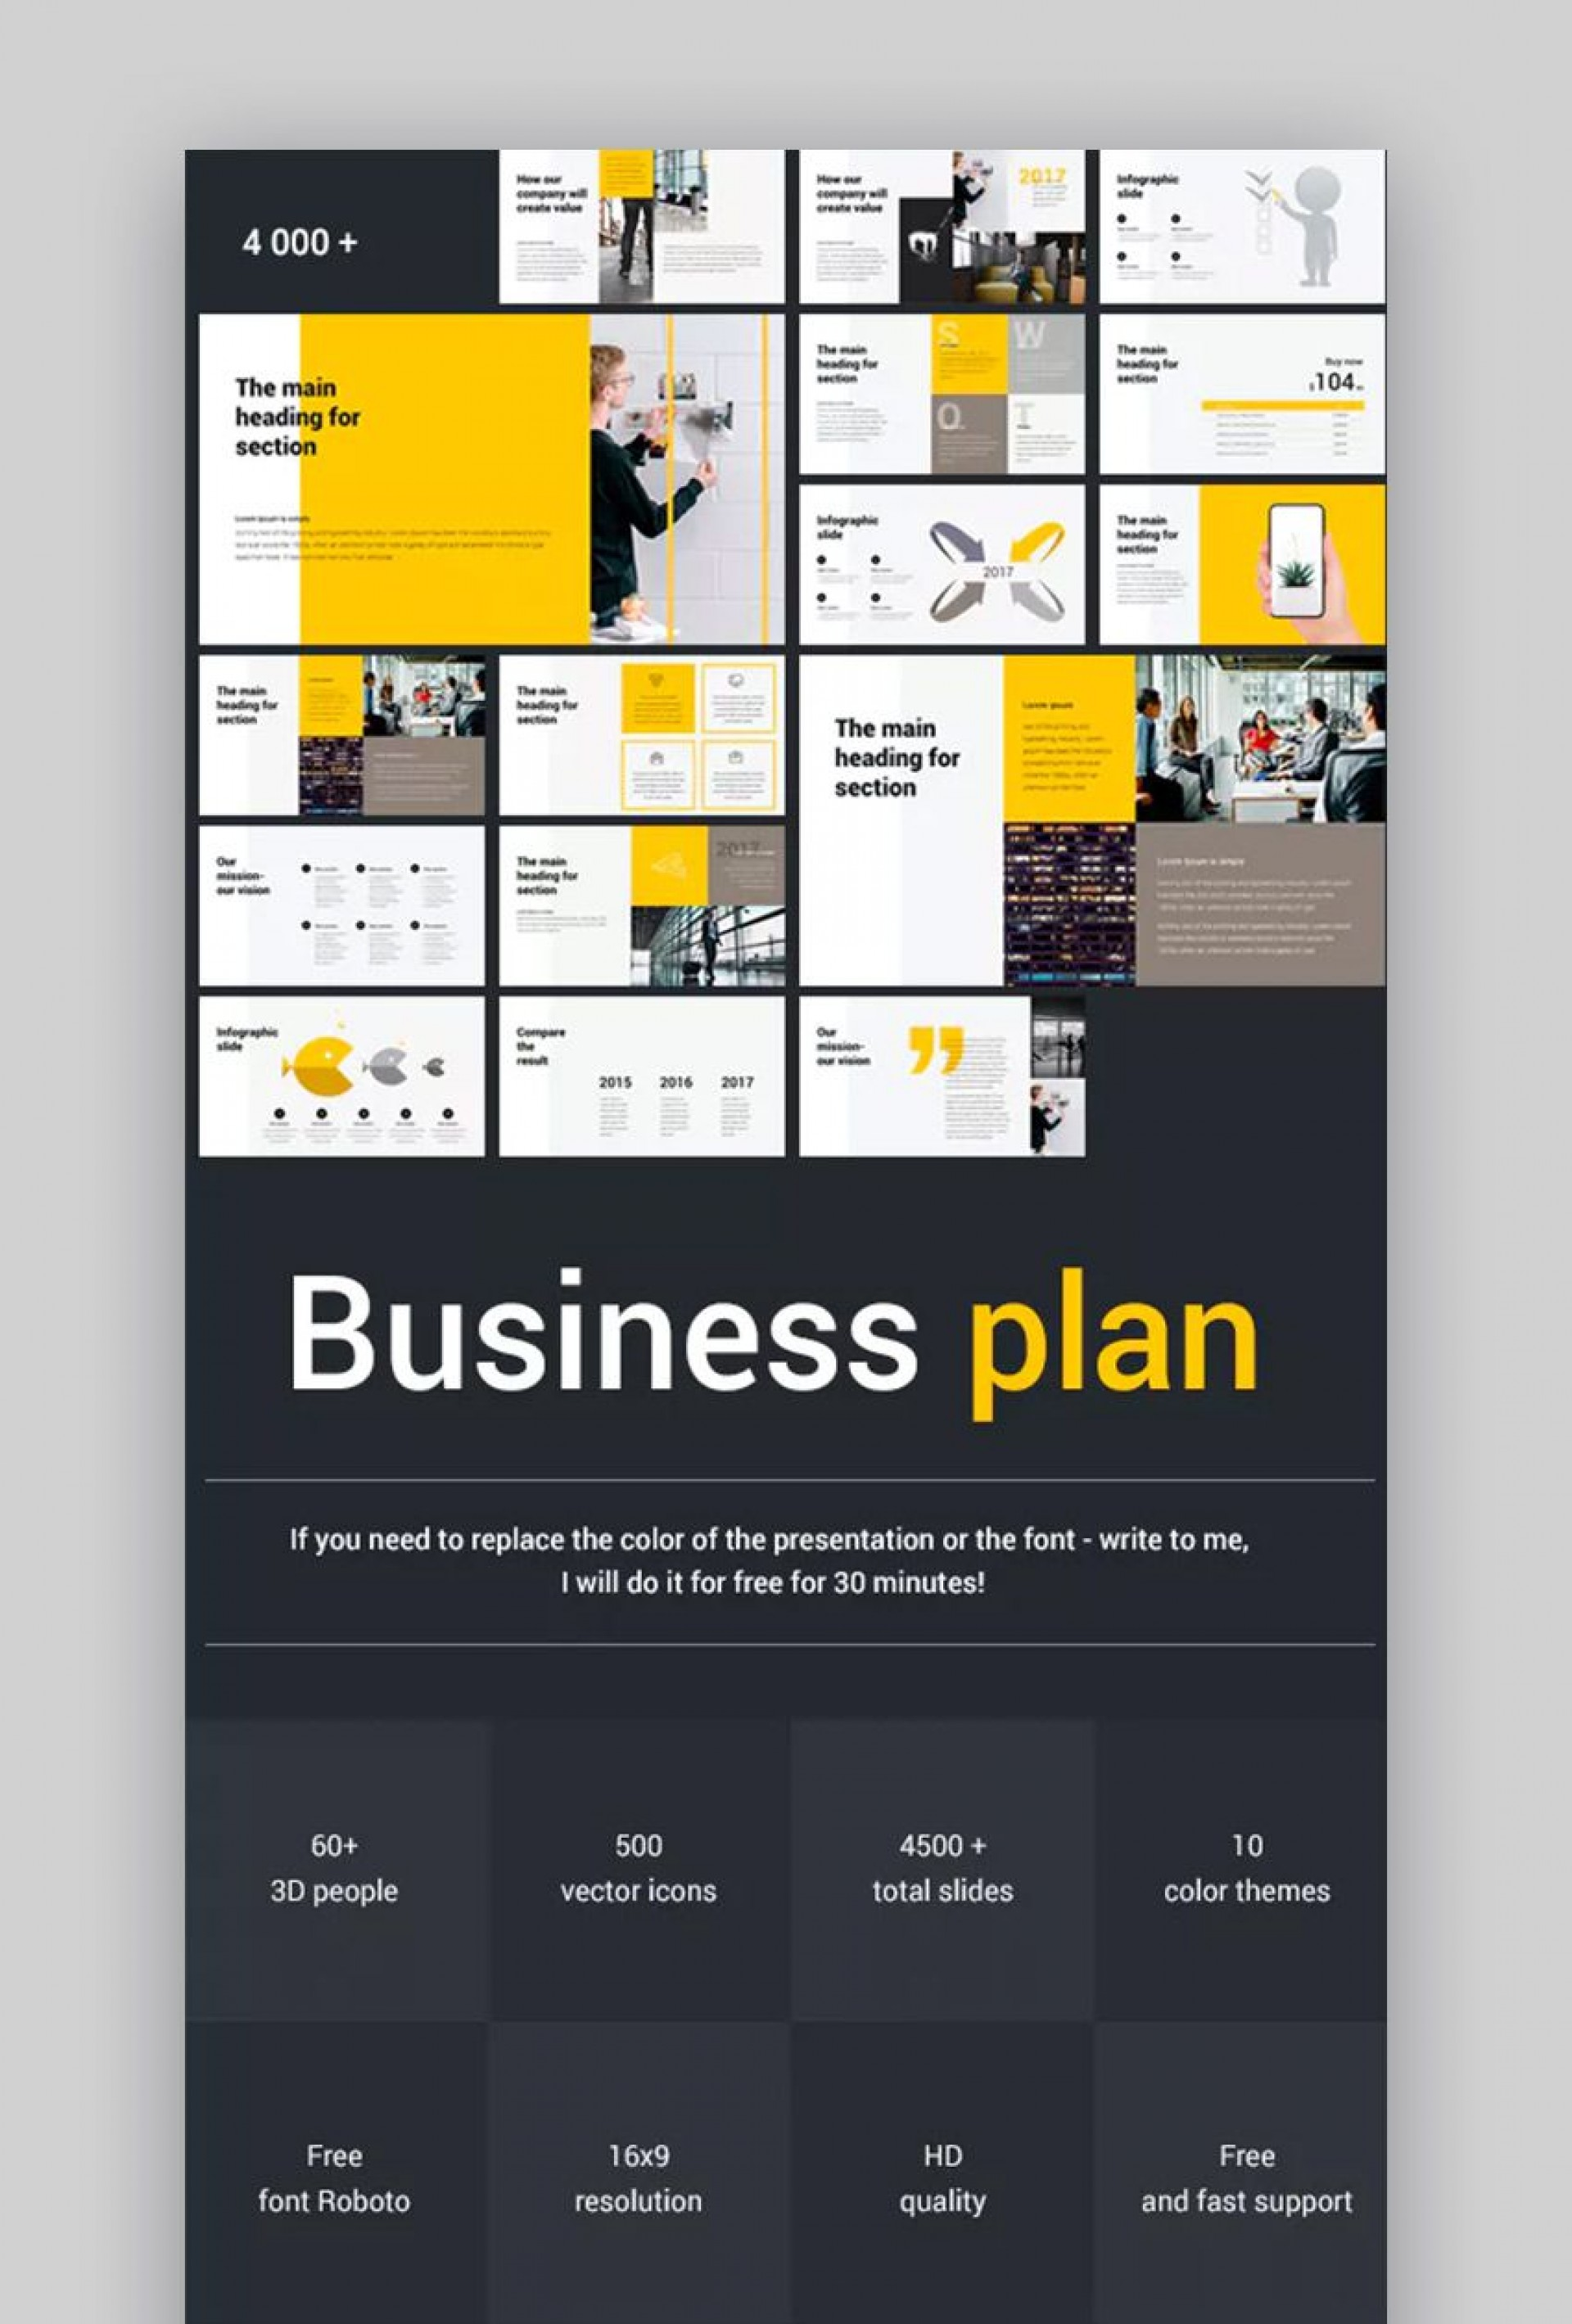 005 Magnificent Free Busines Plan Template Ppt High Def  2020 Download Startup 30 60 901920